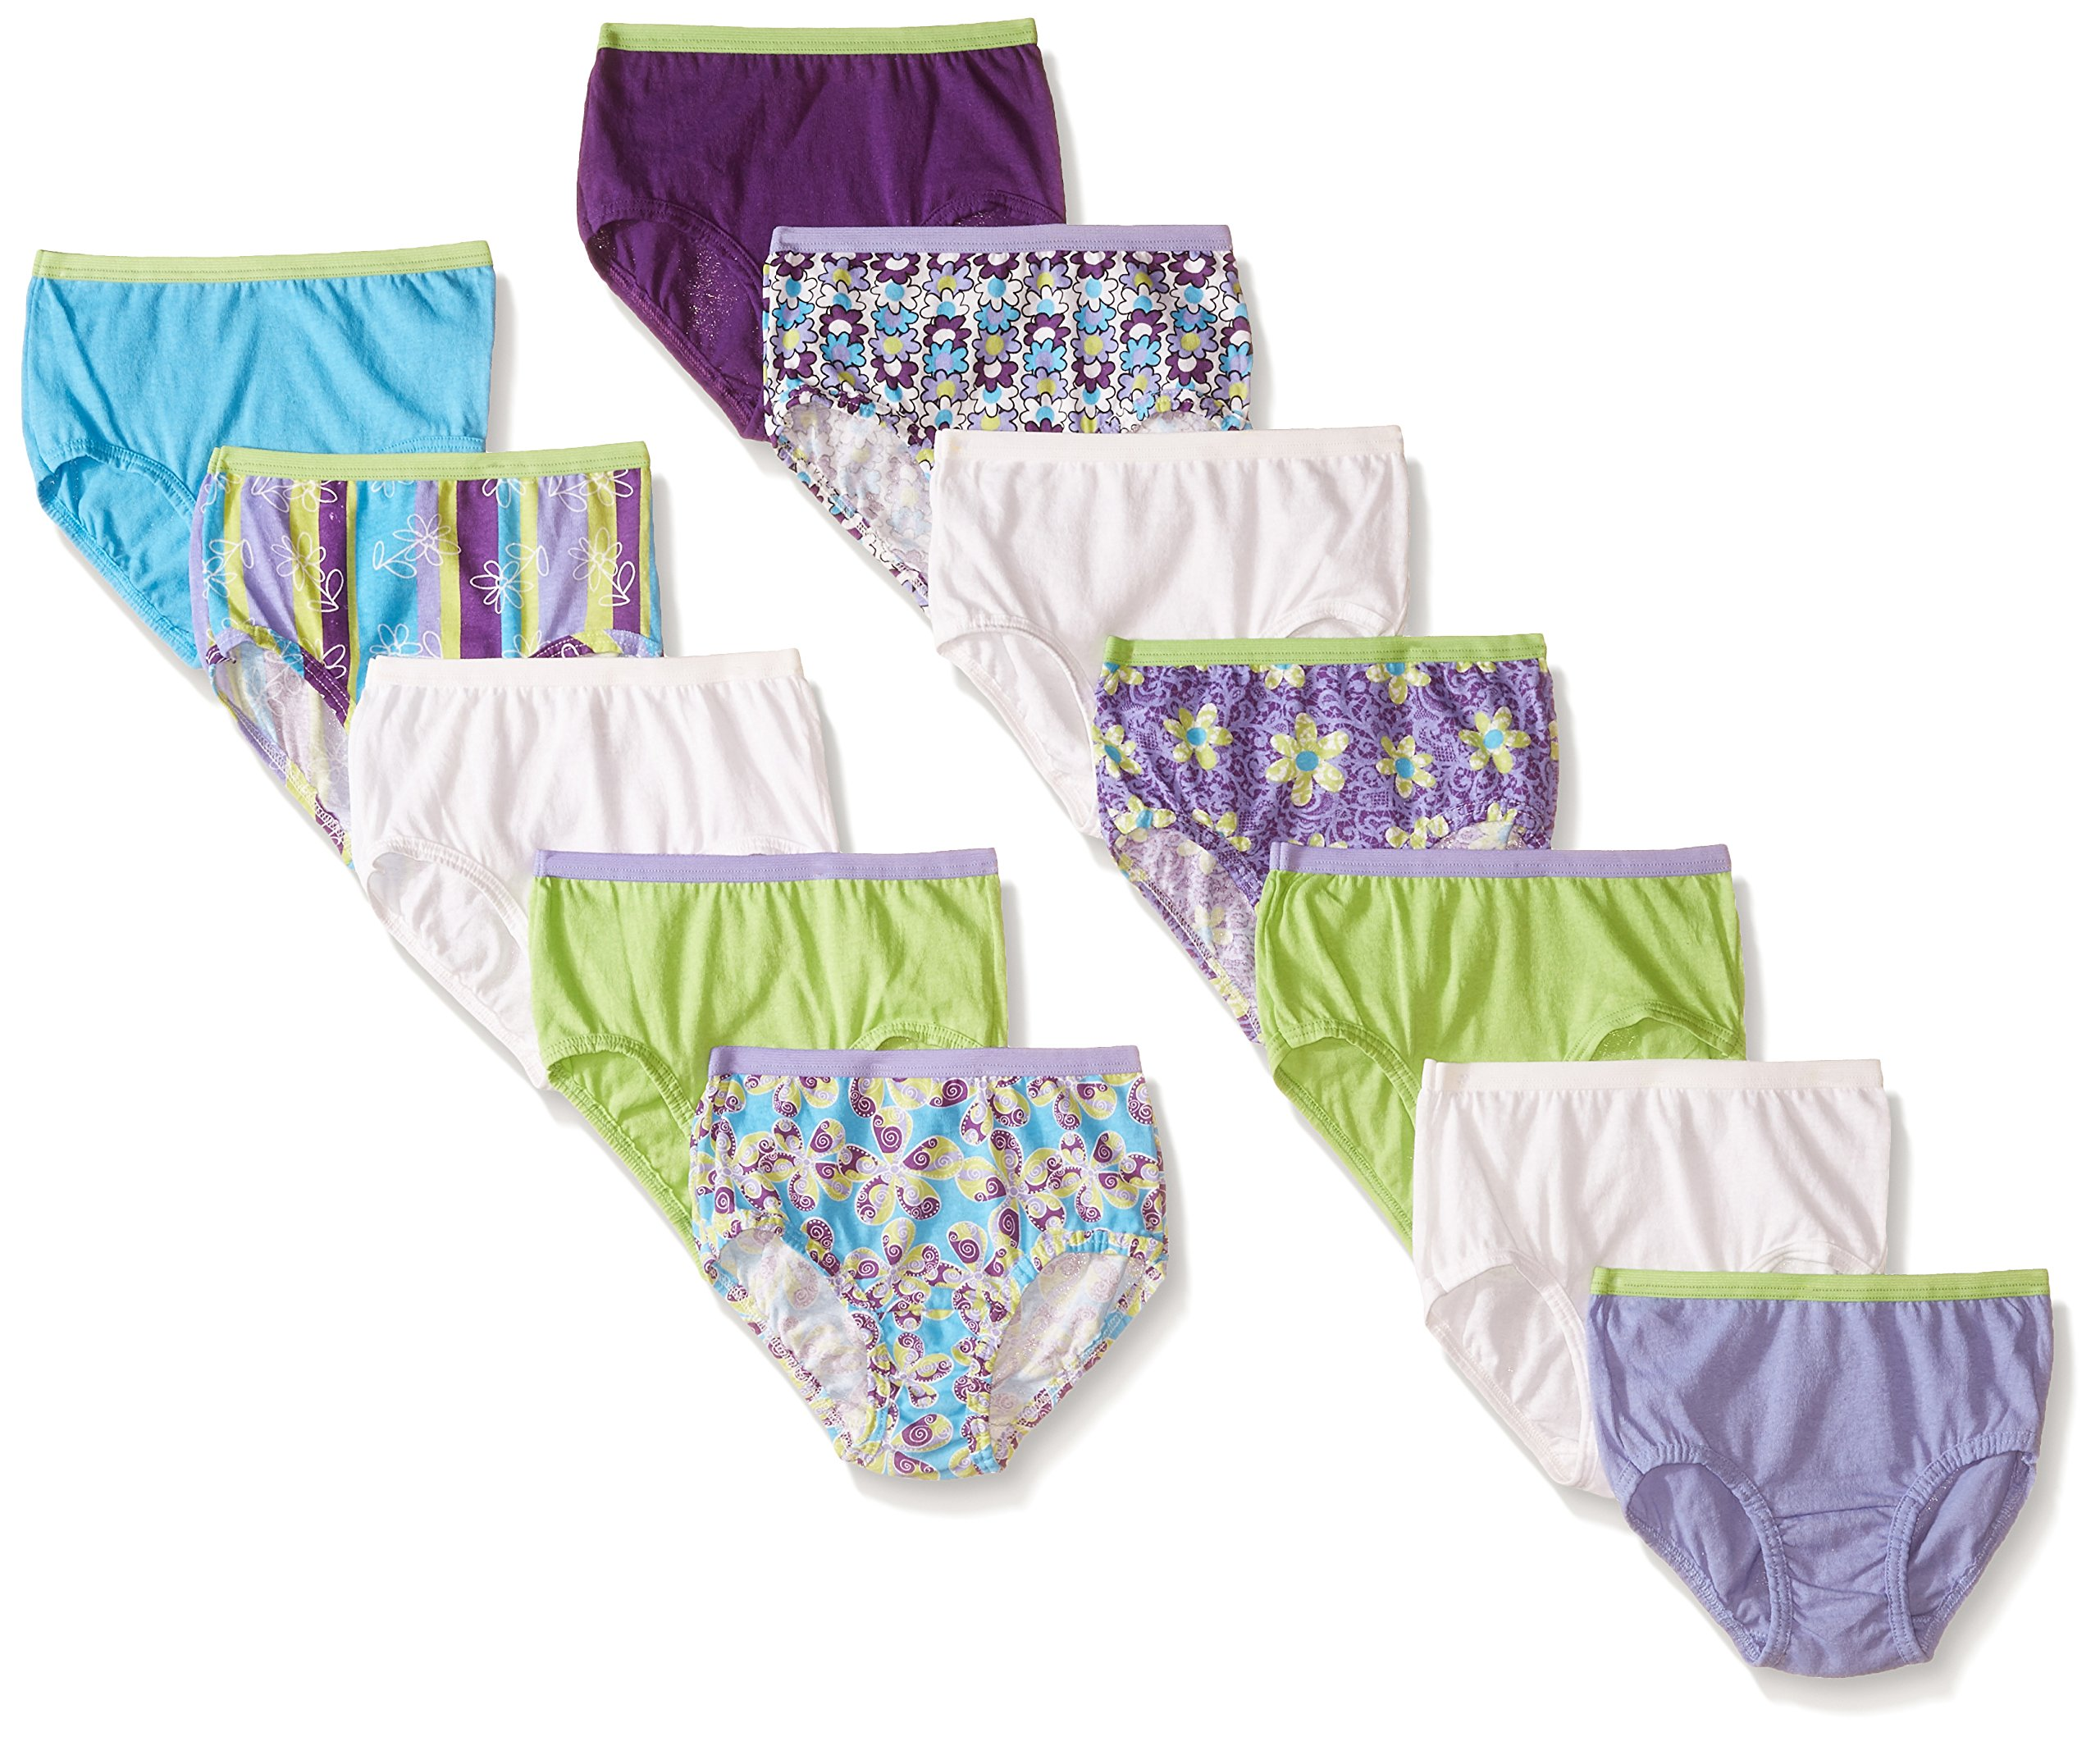 Fruit of the Loom Big Girls' Brief, Assorted, 8 (Pack of 12) by Fruit of the Loom